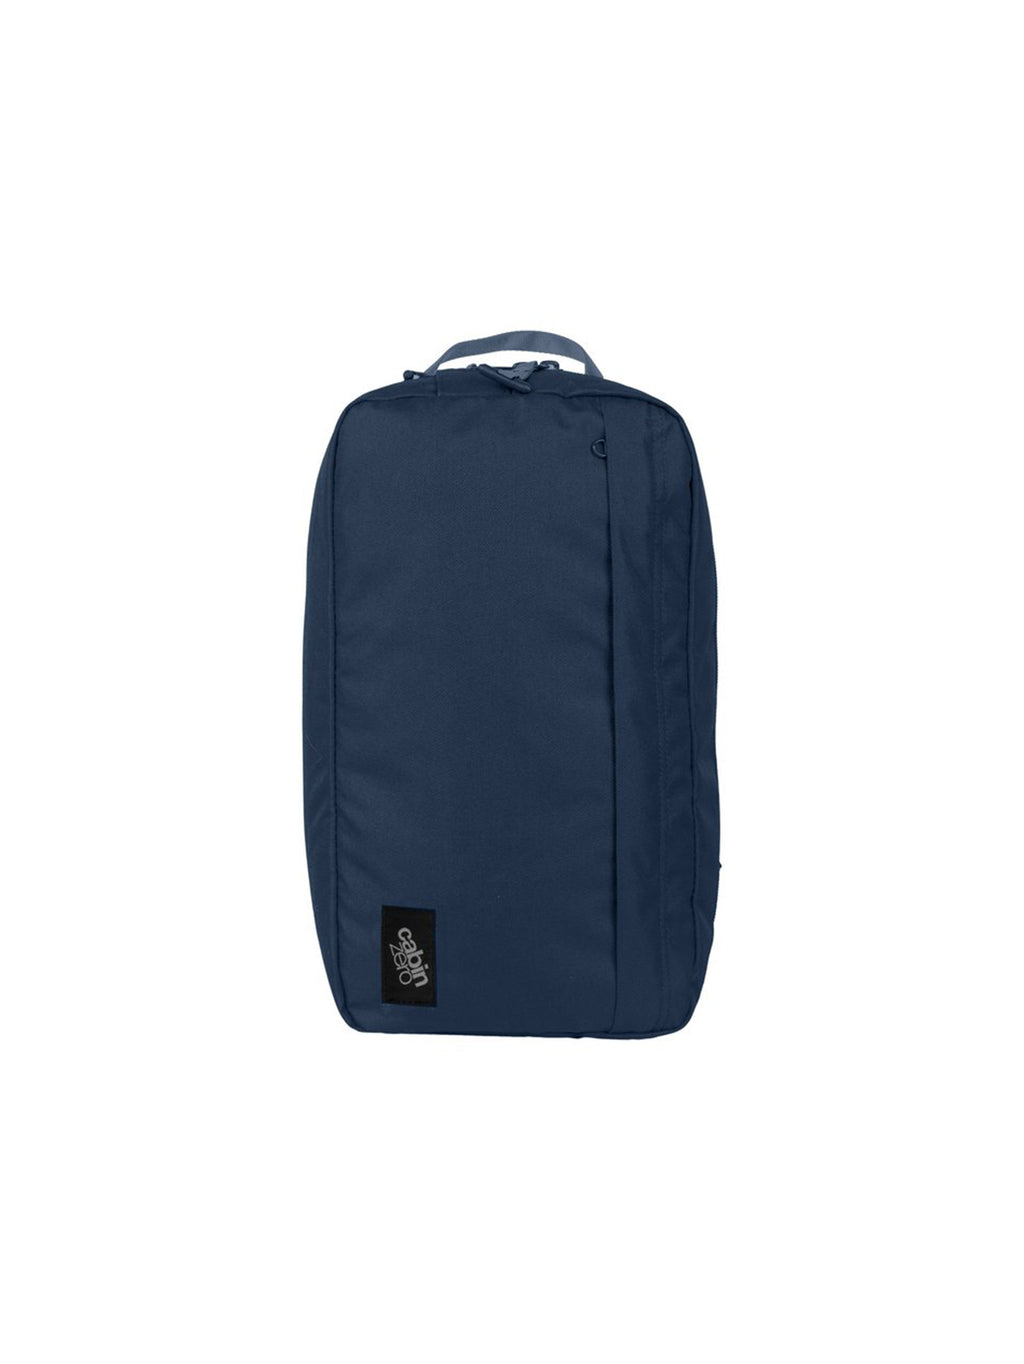 Cabinzero Classic Cross Body 11L in Navy Color - This Is For Him